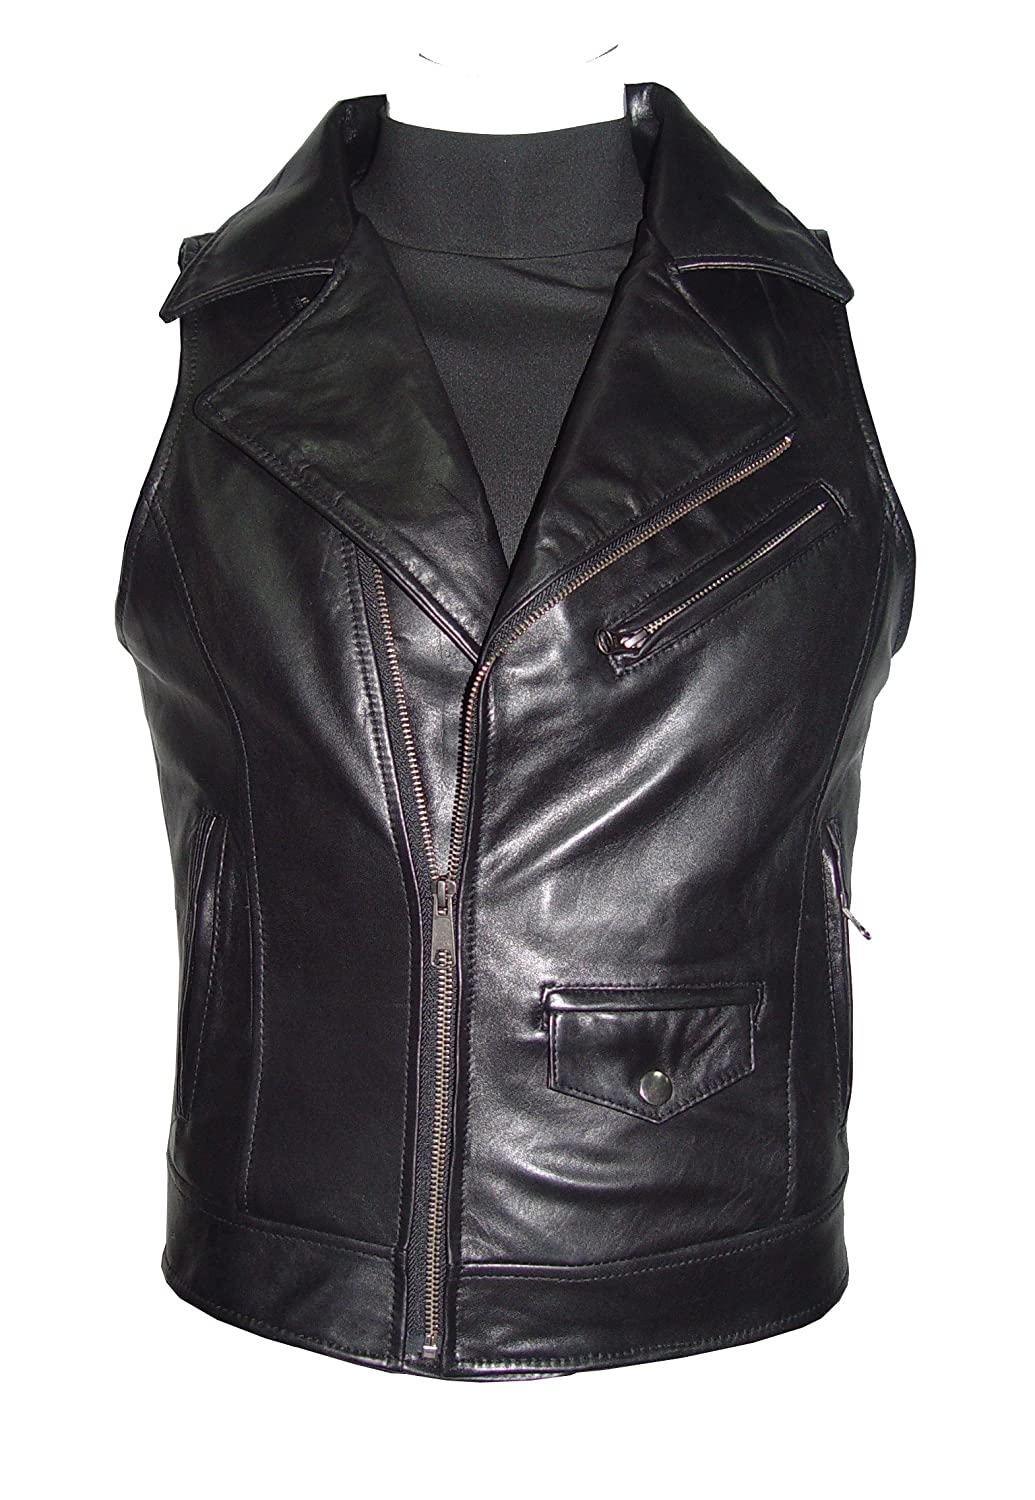 NETTAILOR Tall Big Man 1161 Big Tall Size Leather Casual Vest